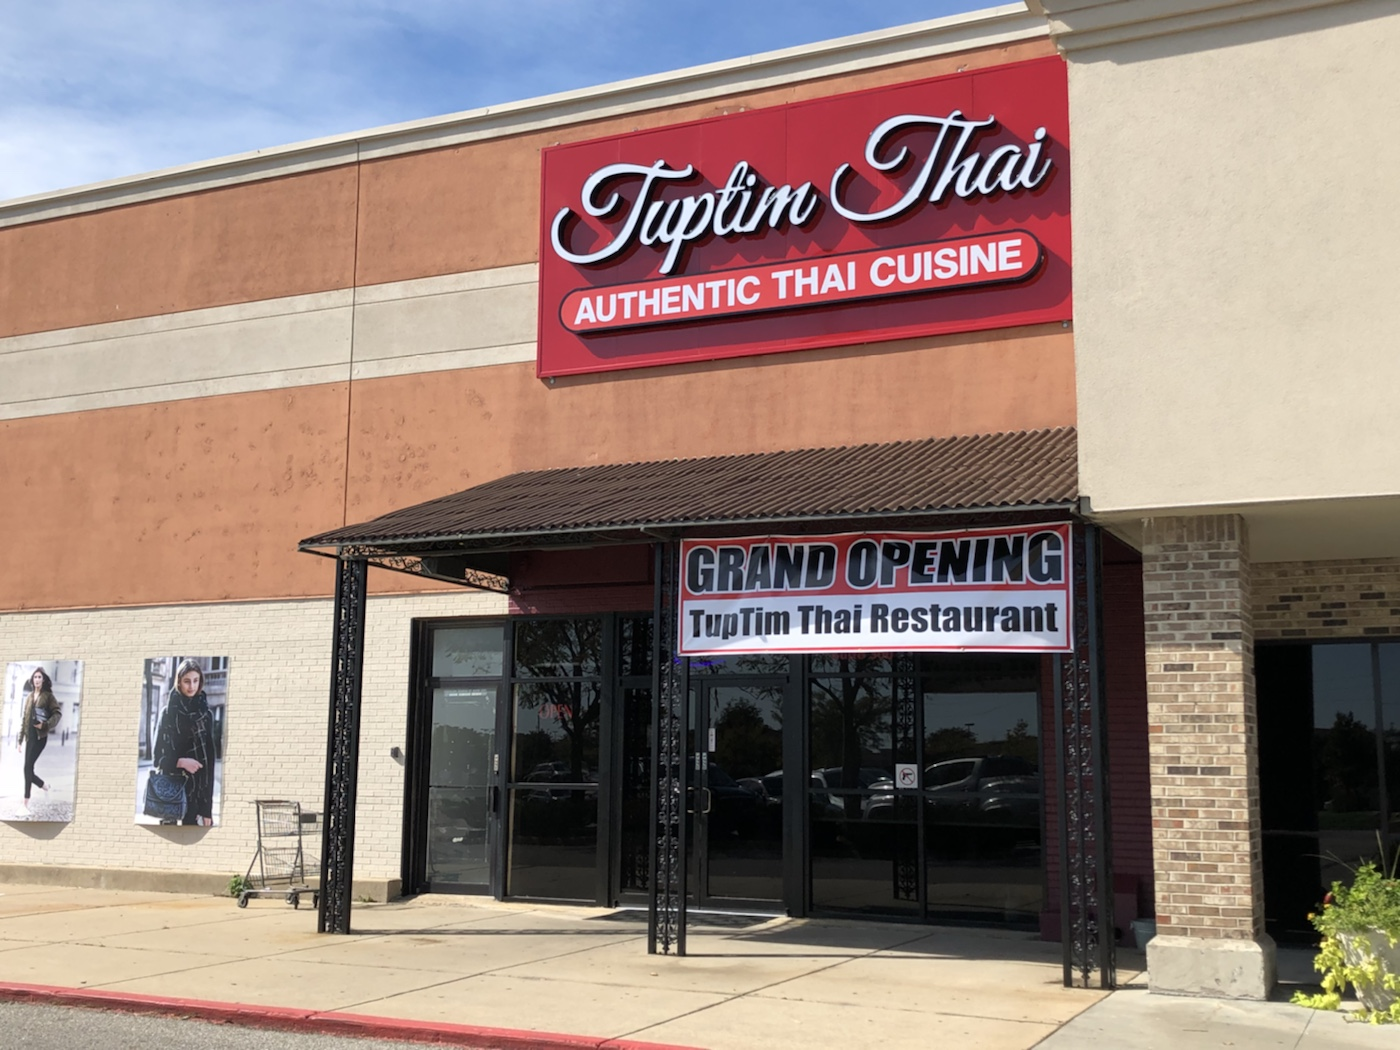 Tuptim Thai Restaurant